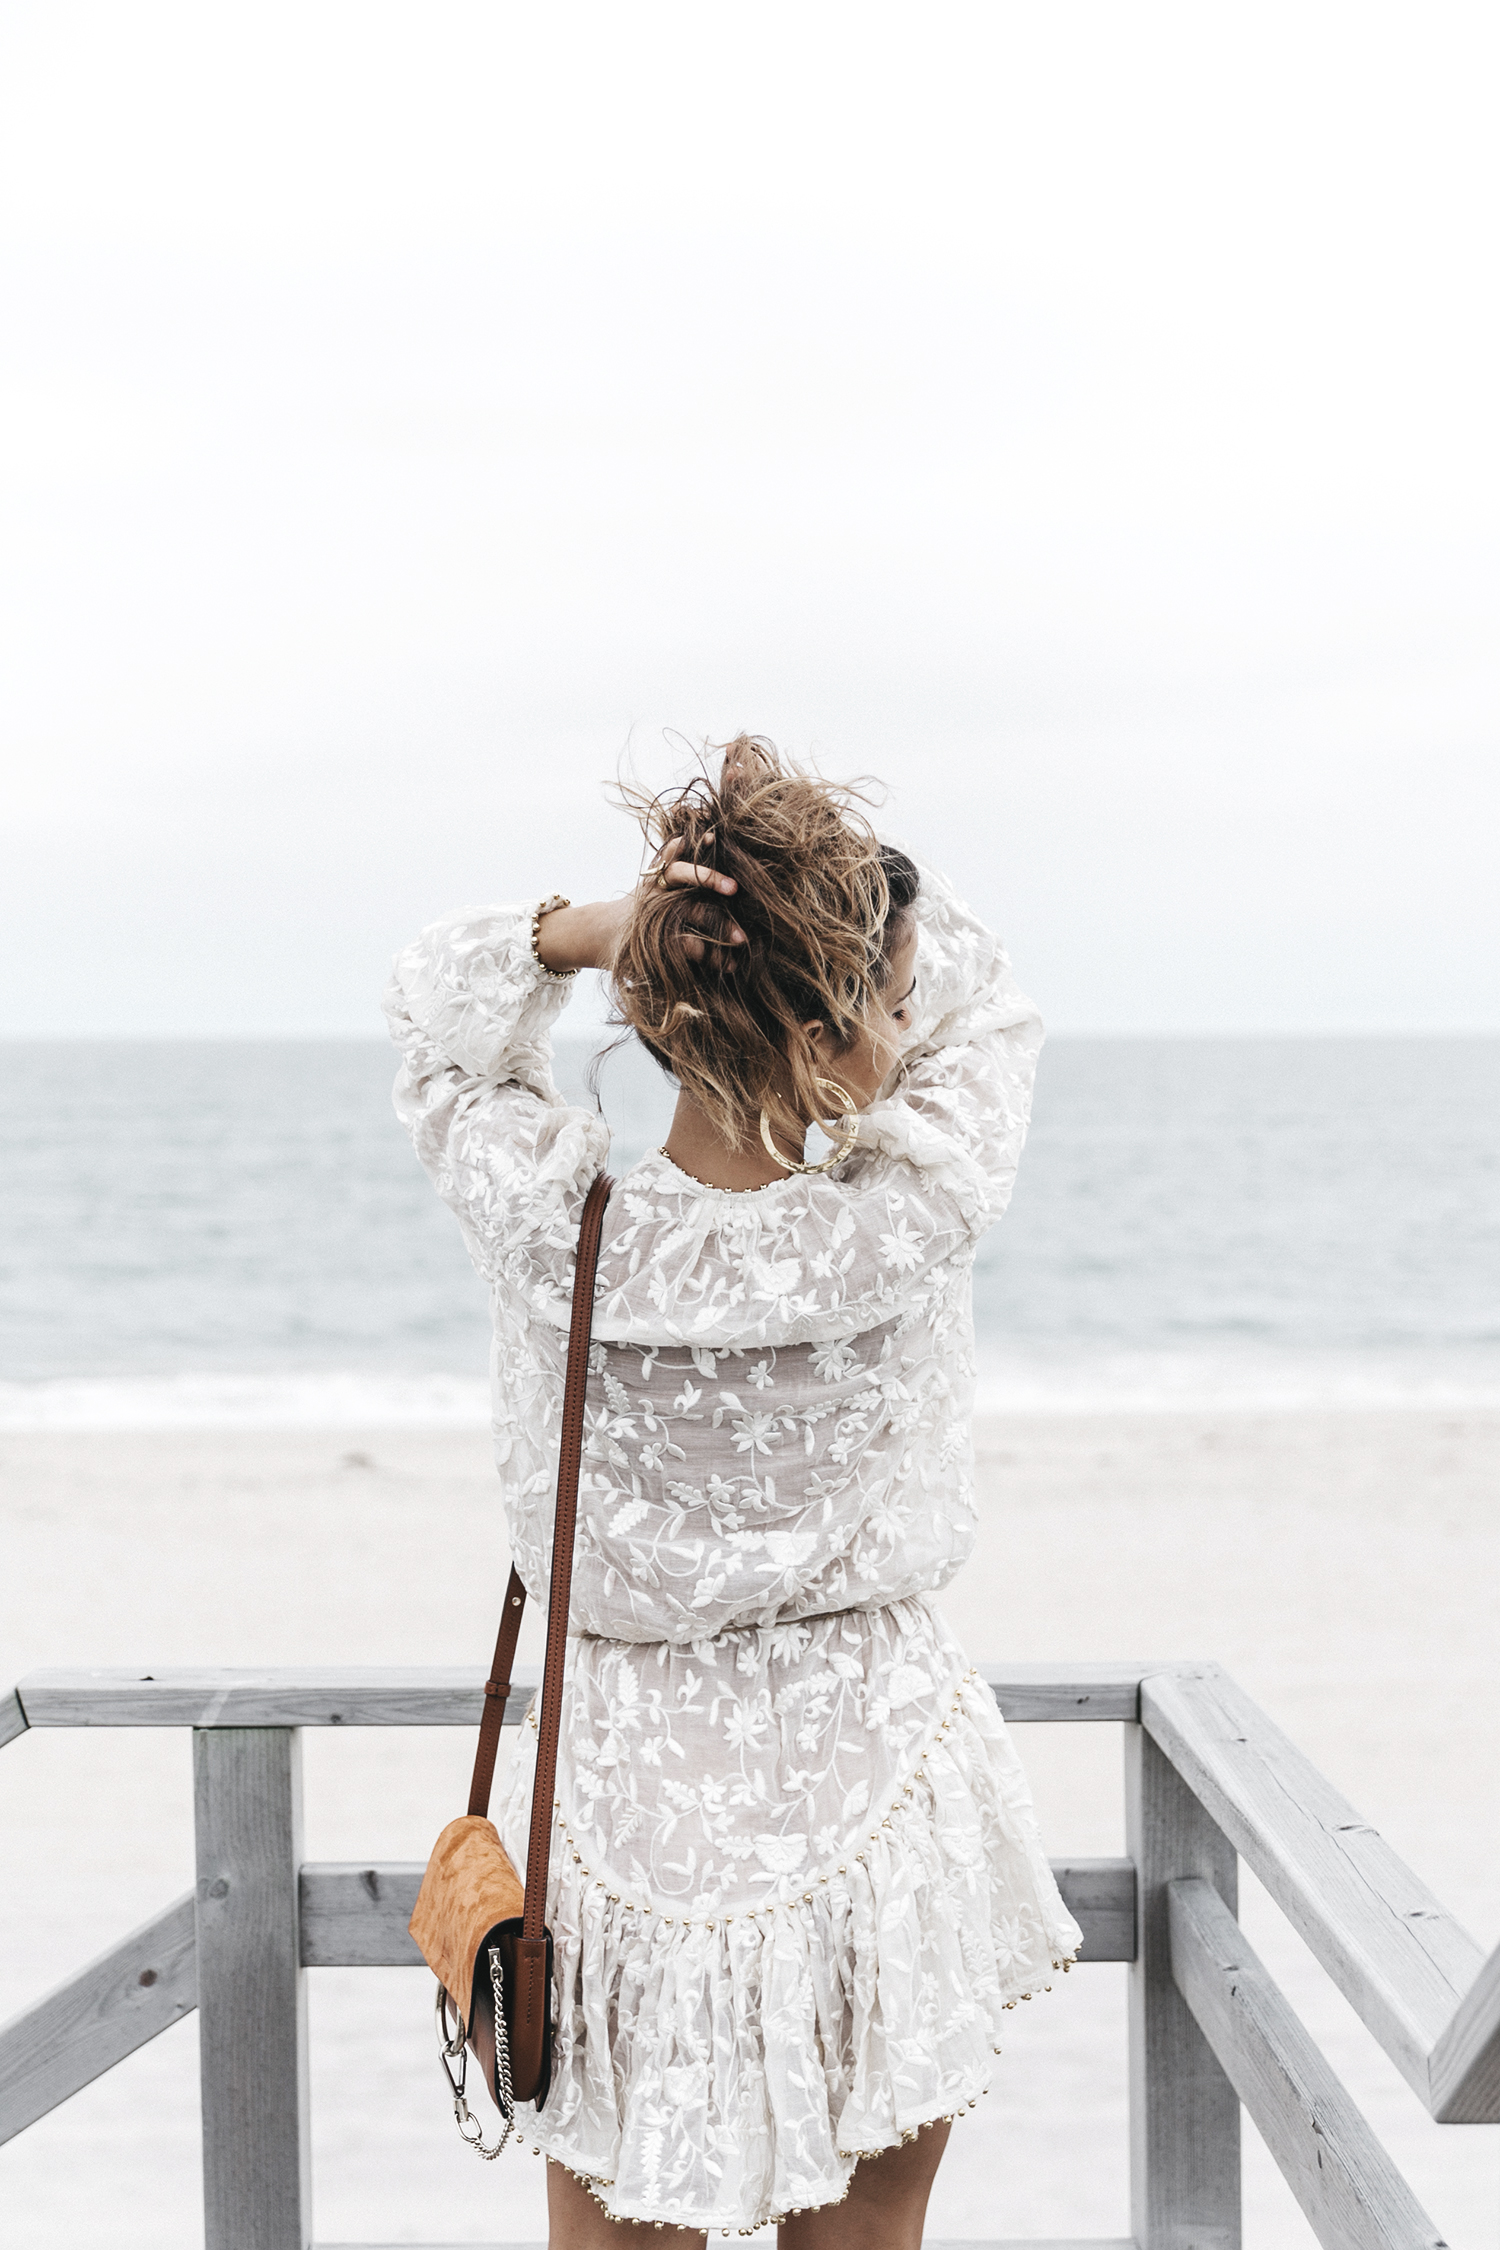 Revolve_in_The_Hamptons-Zimmermann-Embroidered_Dress-WHite_Dress-Chloe_Fay_Bag-Chloe_Wedges-Outfit-174